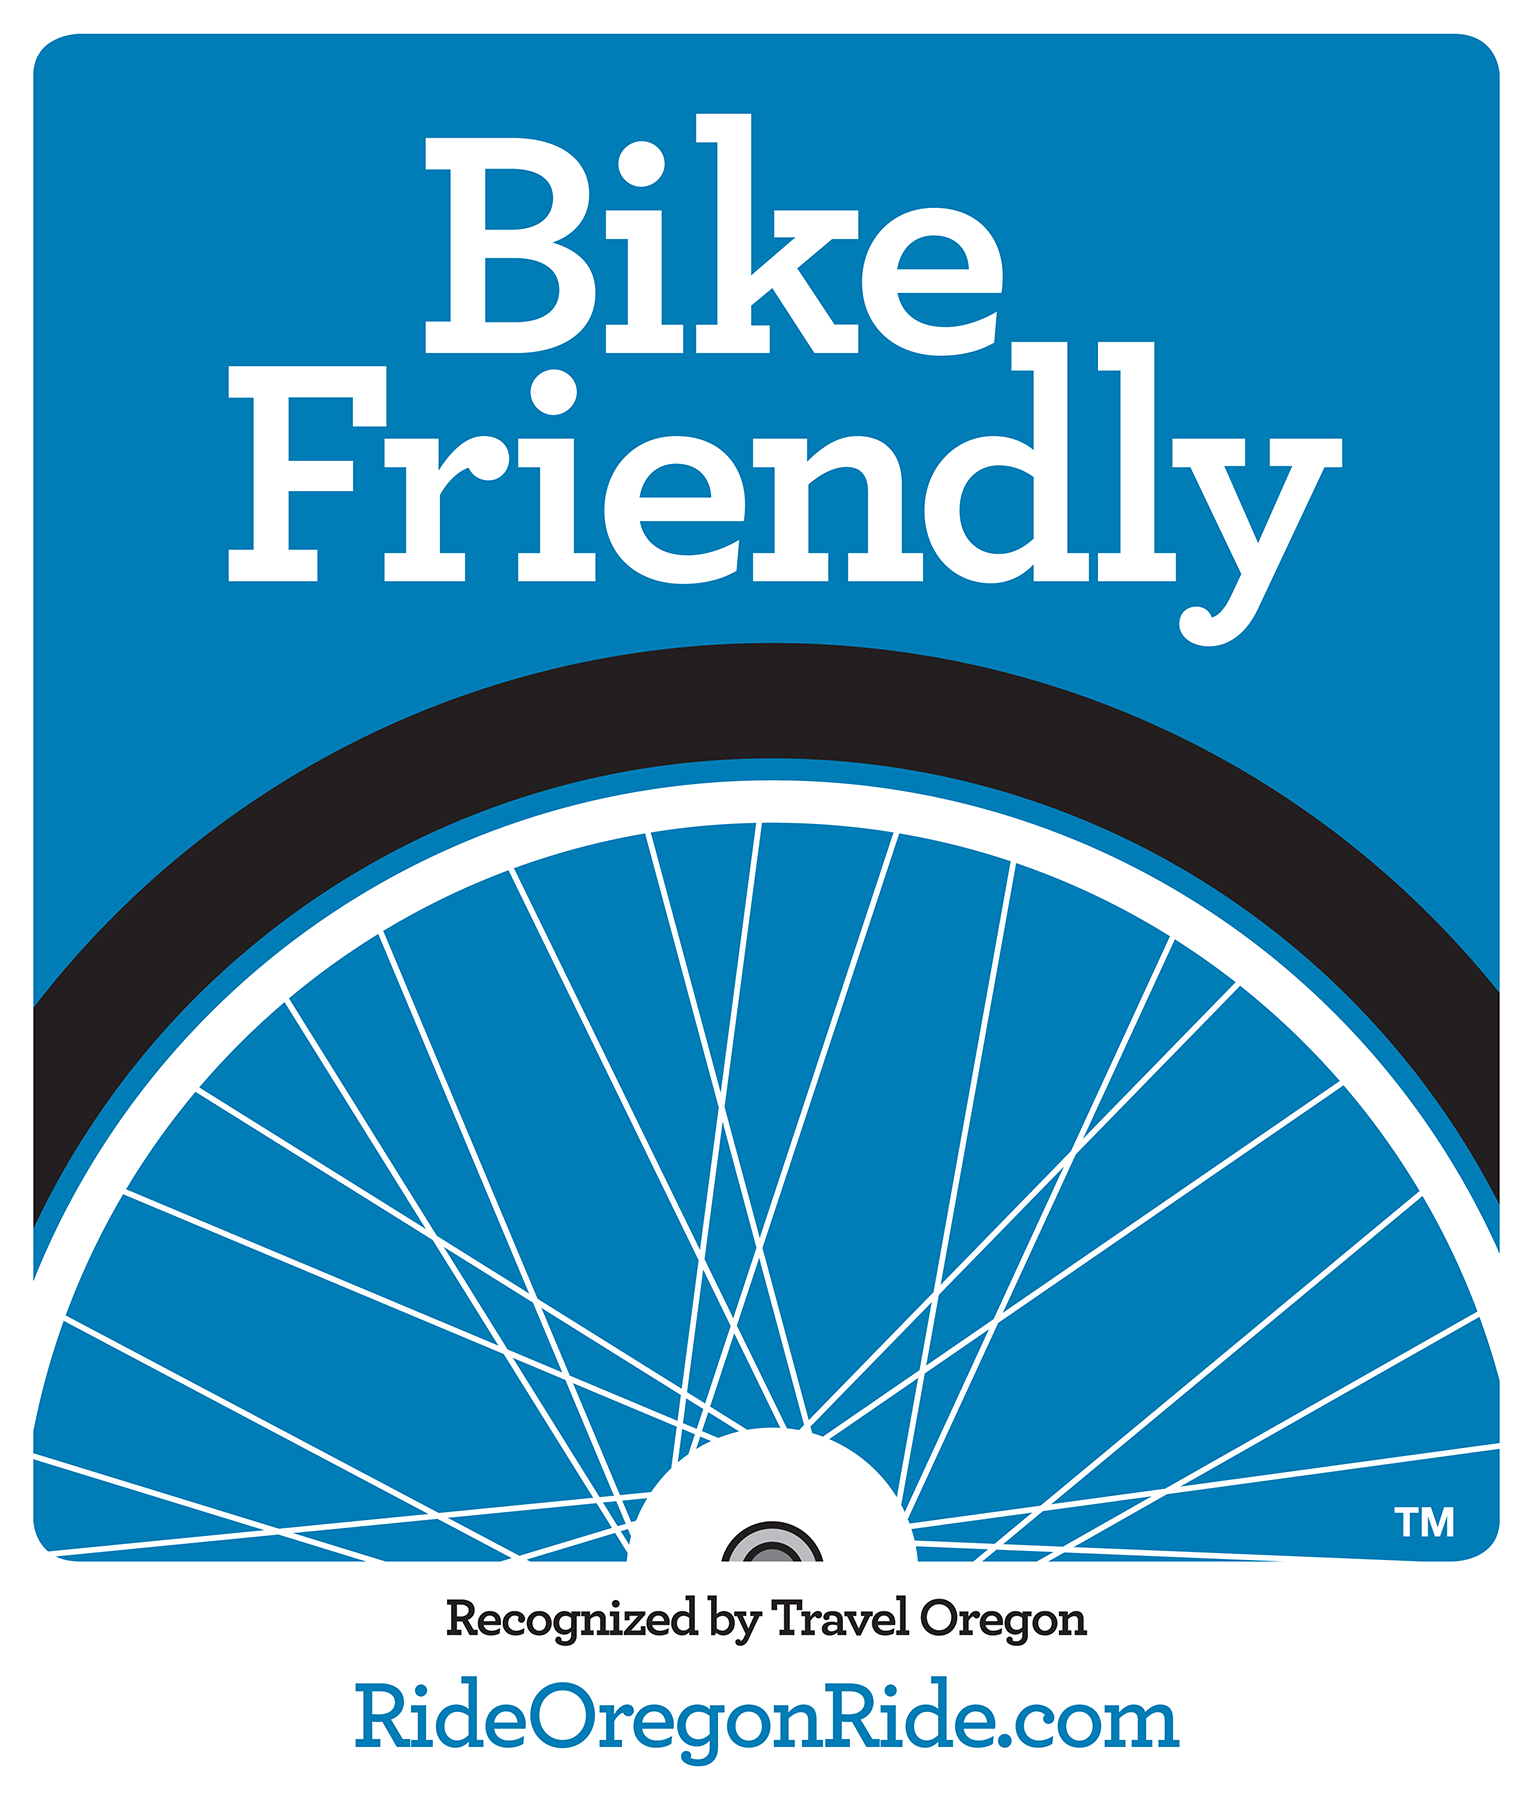 Travel-Oregon-Bike-Friendly-graphic-no-icons